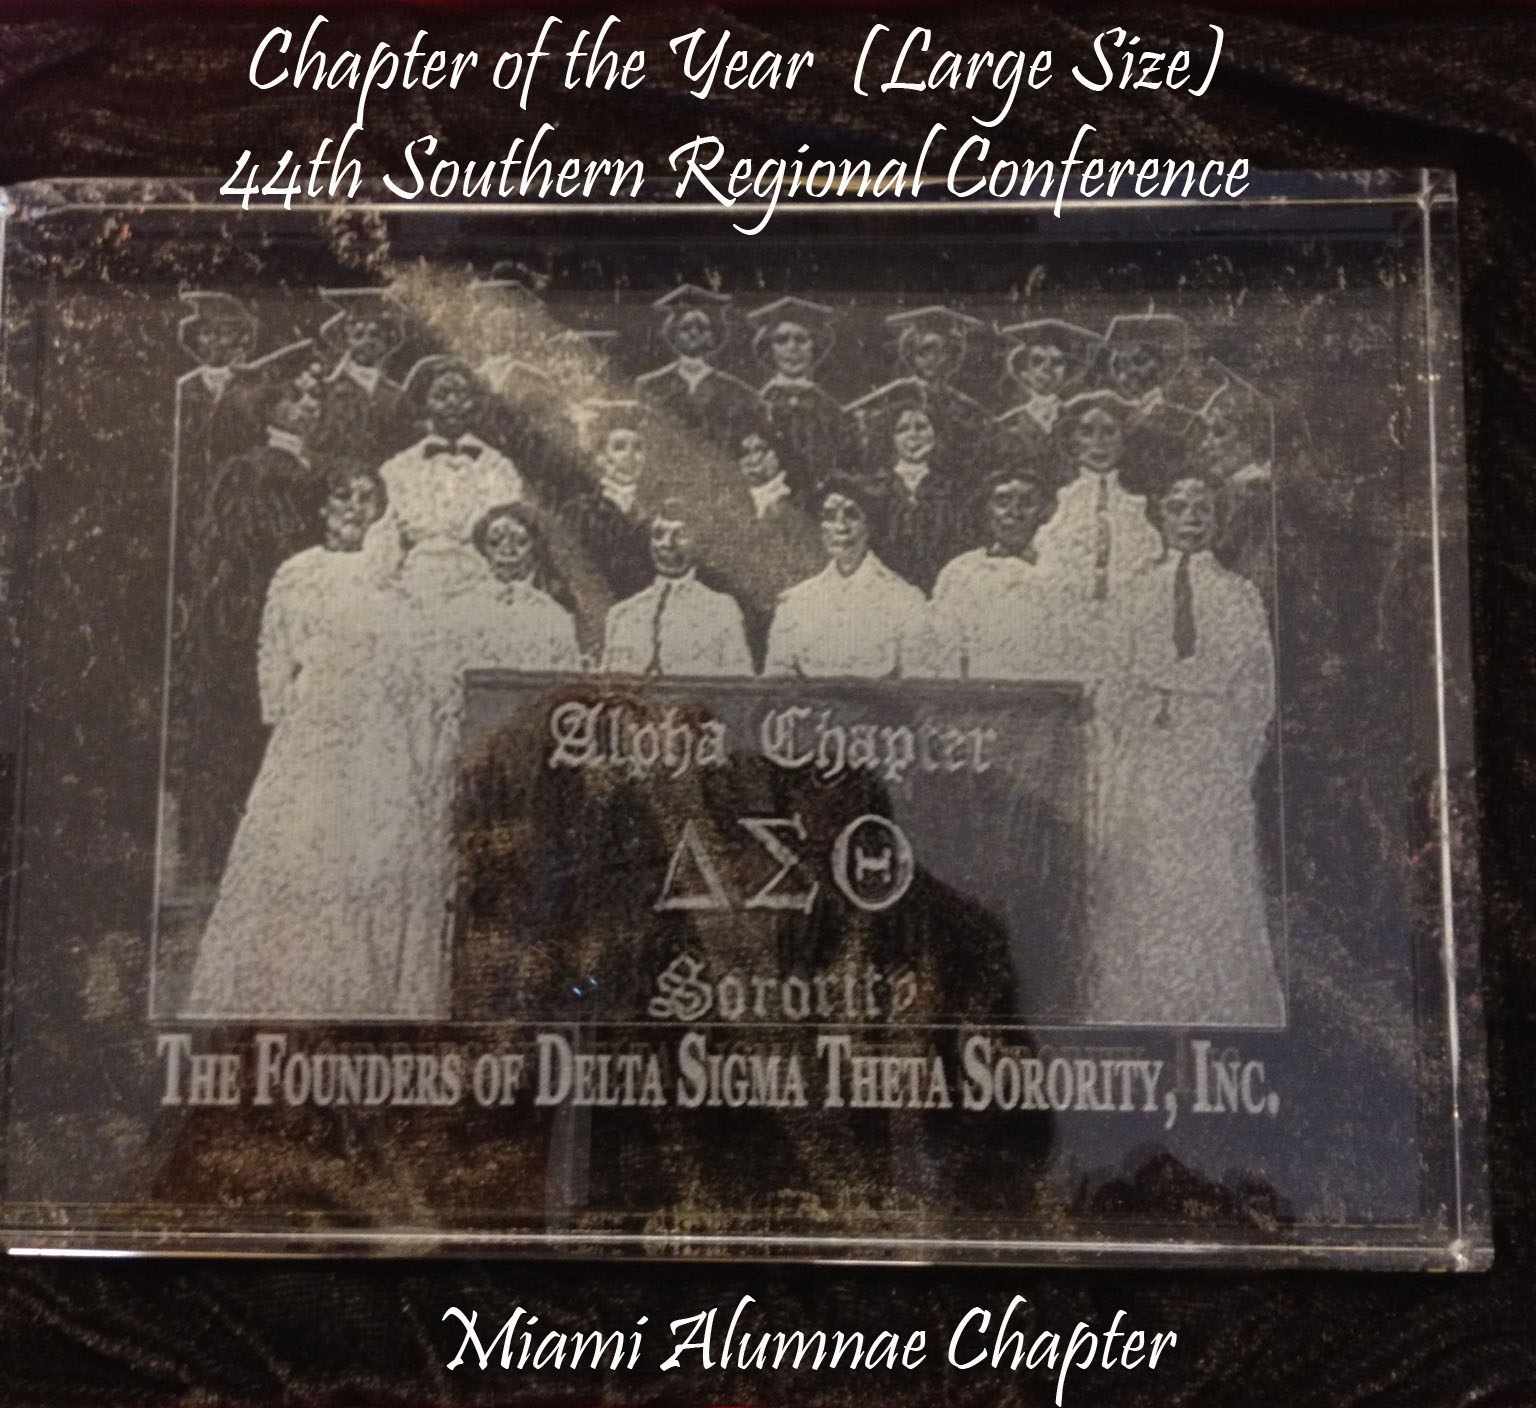 Chapter of the Year Award 2014